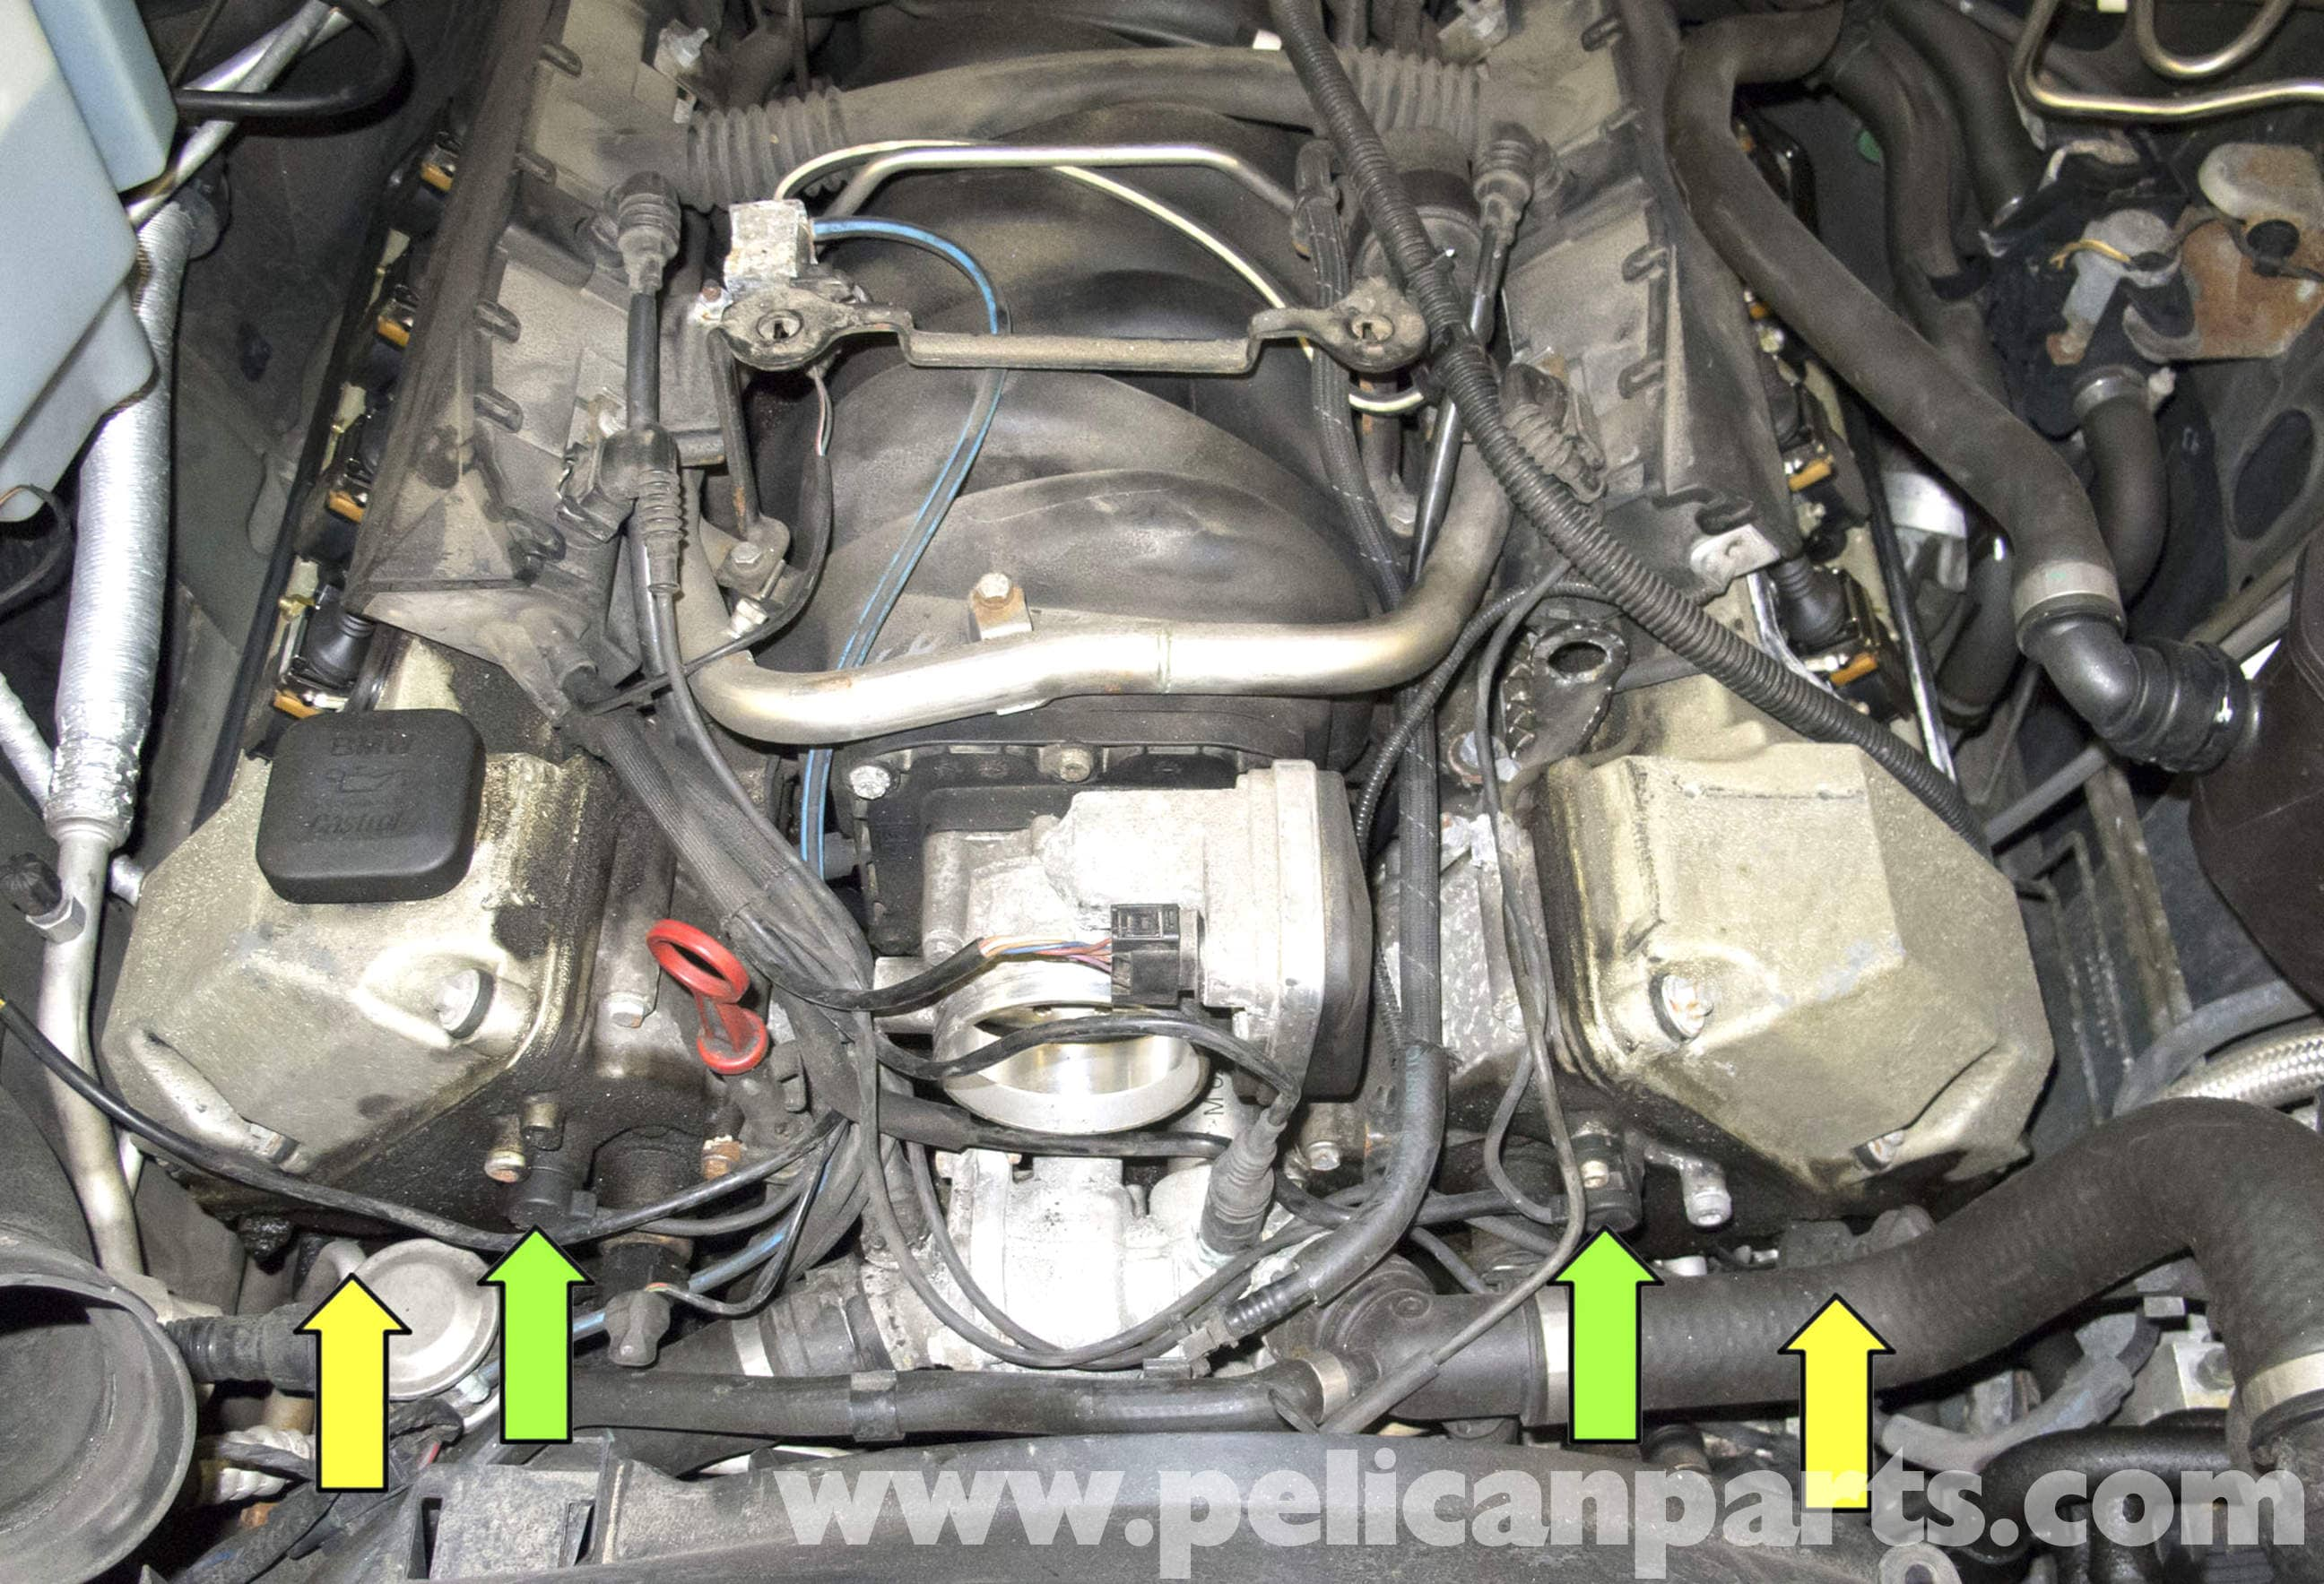 62 Diesel Fuel System Diagram Starting Know About Wiring Geo Tracker Engine Manifold Bmw X5 M62 8 Cylinder Camshaft Sensor Testing E53 2000